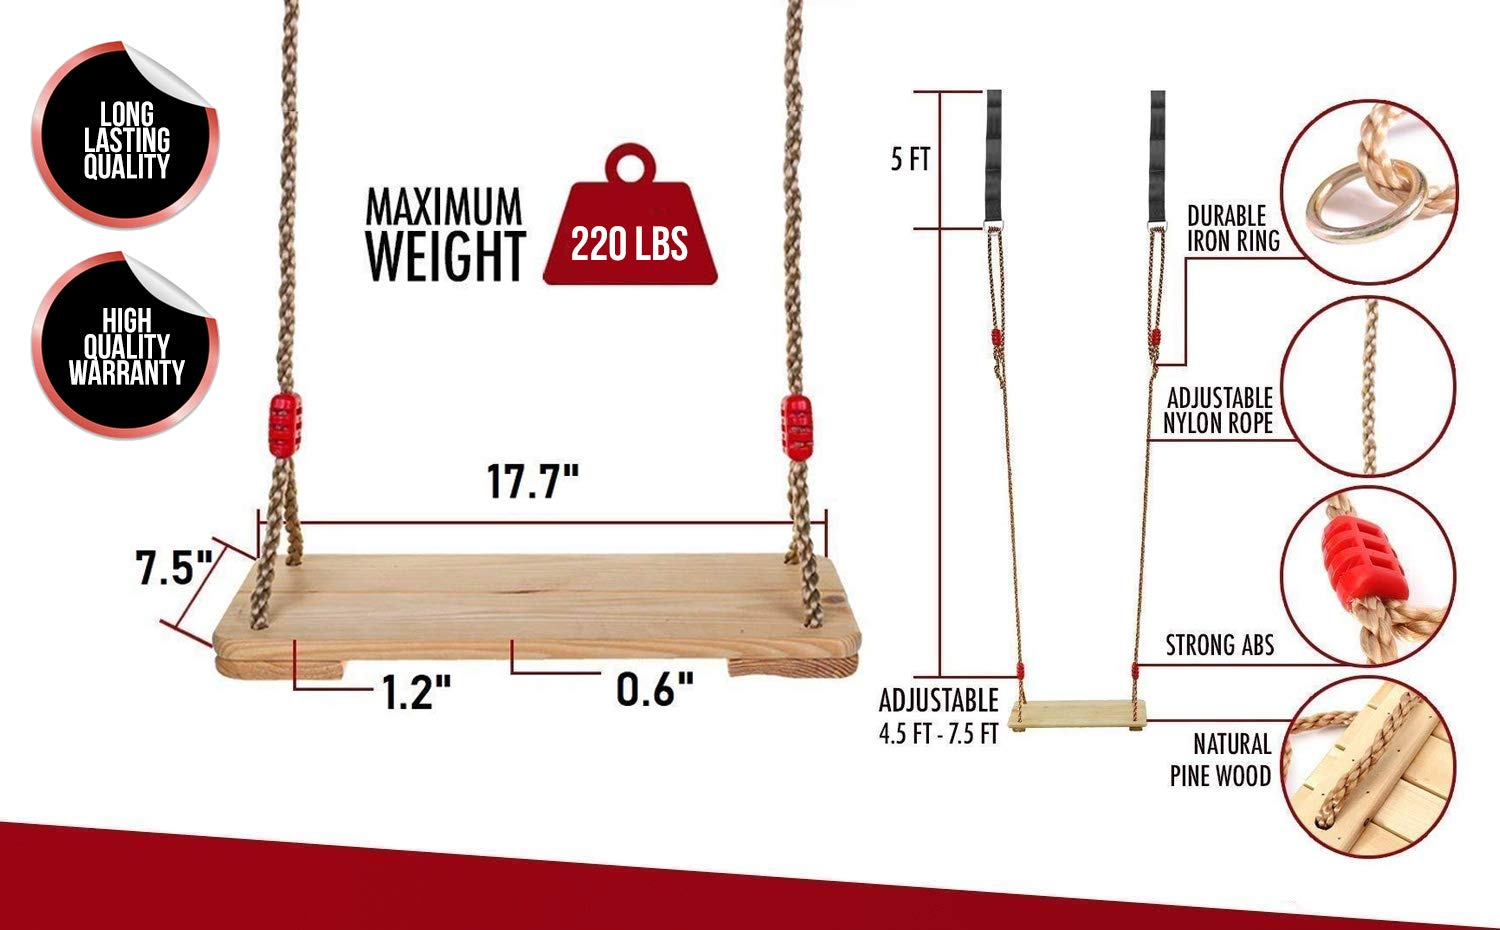 220 lbs Capacity Pine Wood for Oak Branch Hanging Wooden Tree Swings for Adult Kids Children Teen with Straps 17x 7 Classic Swing Seat with Adjustable 90 Length Nylon Rope for Playground Home